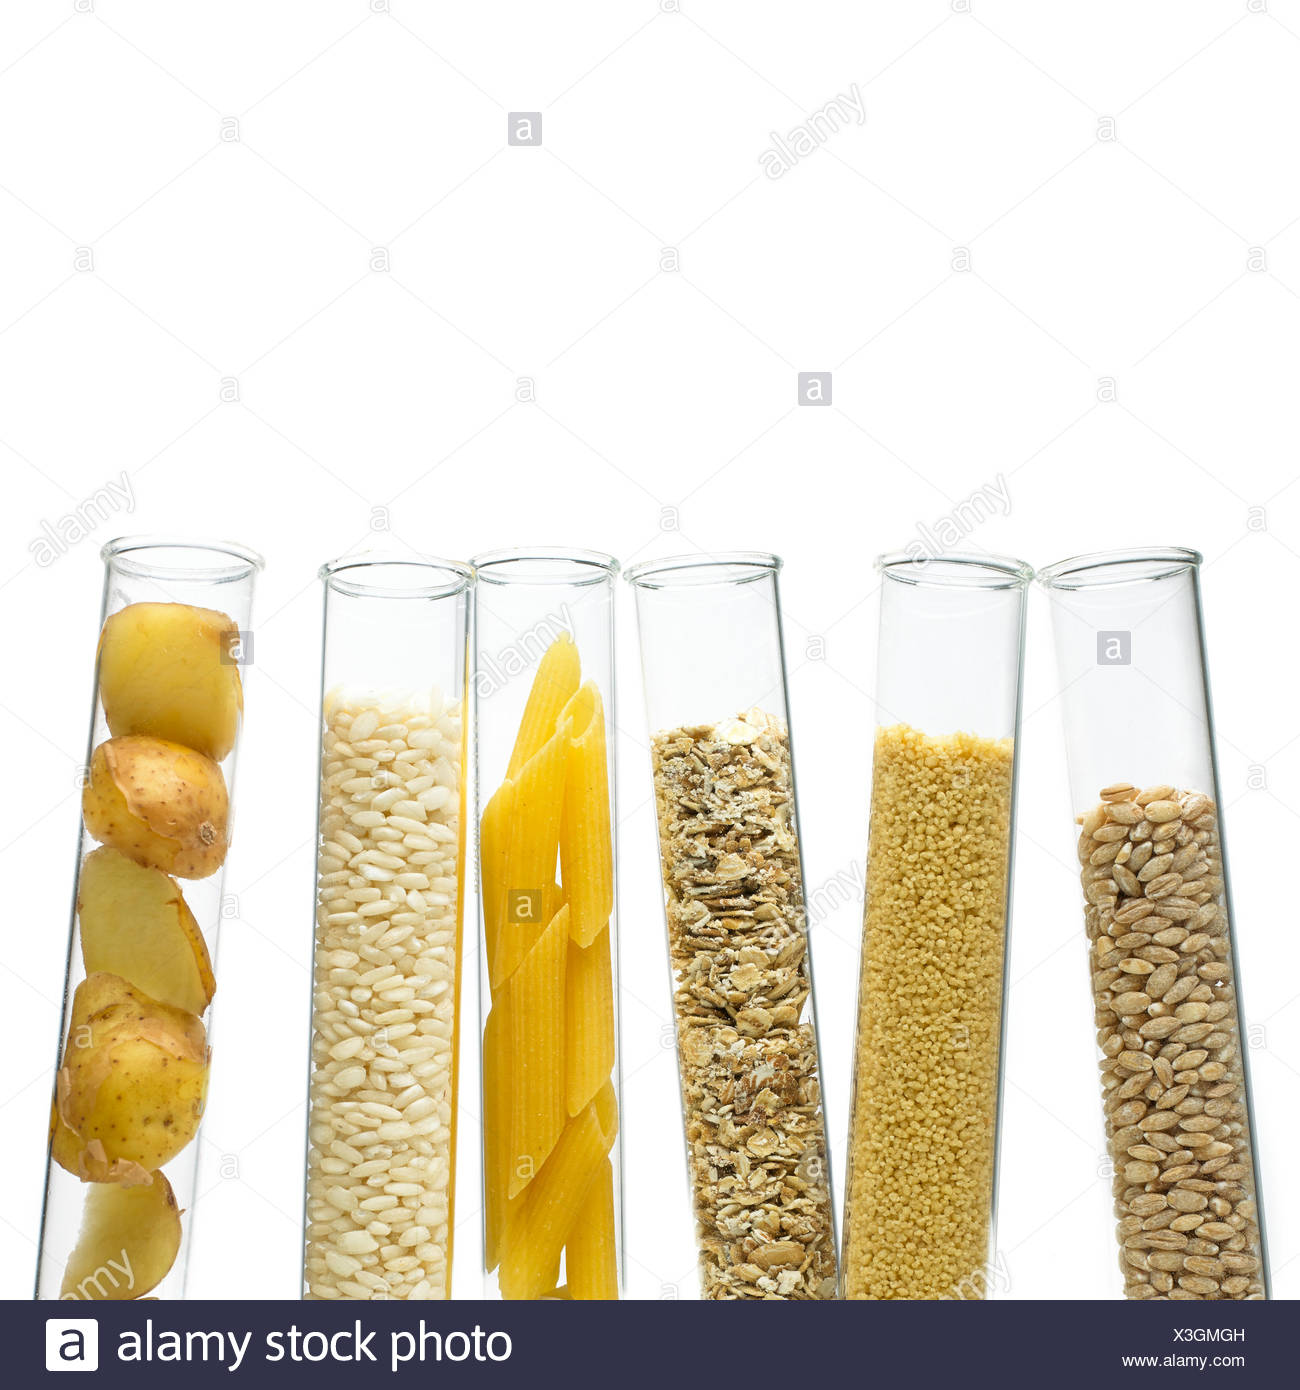 Grains and carbohydrates in test tubes - Stock Image